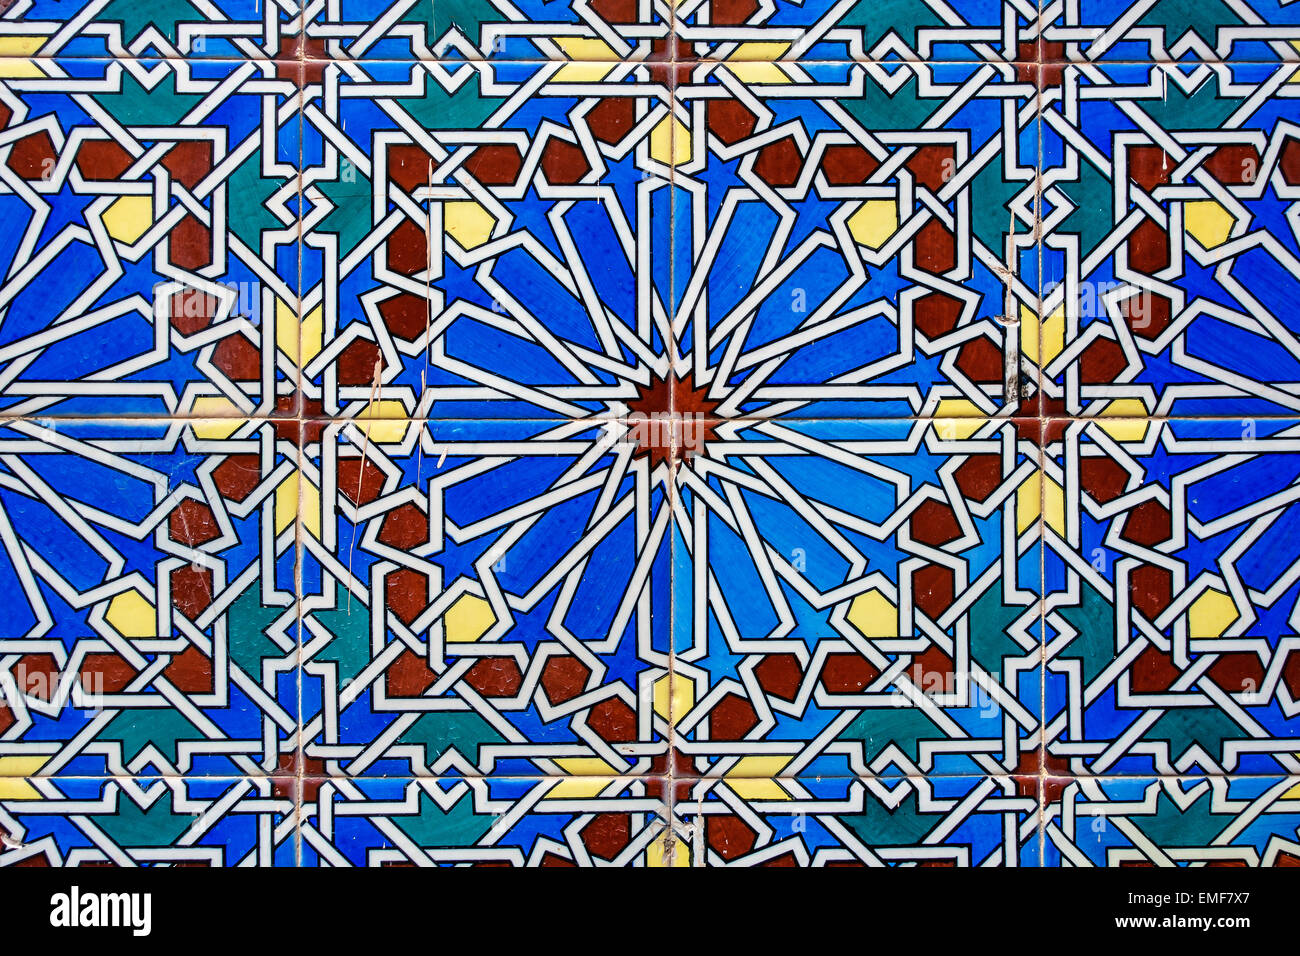 decorative ceramic wall tiles. Old Ornate Decorative Ceramic Wall Tiles  Church of Saint Mary the Crowned Main Street Gibraltar